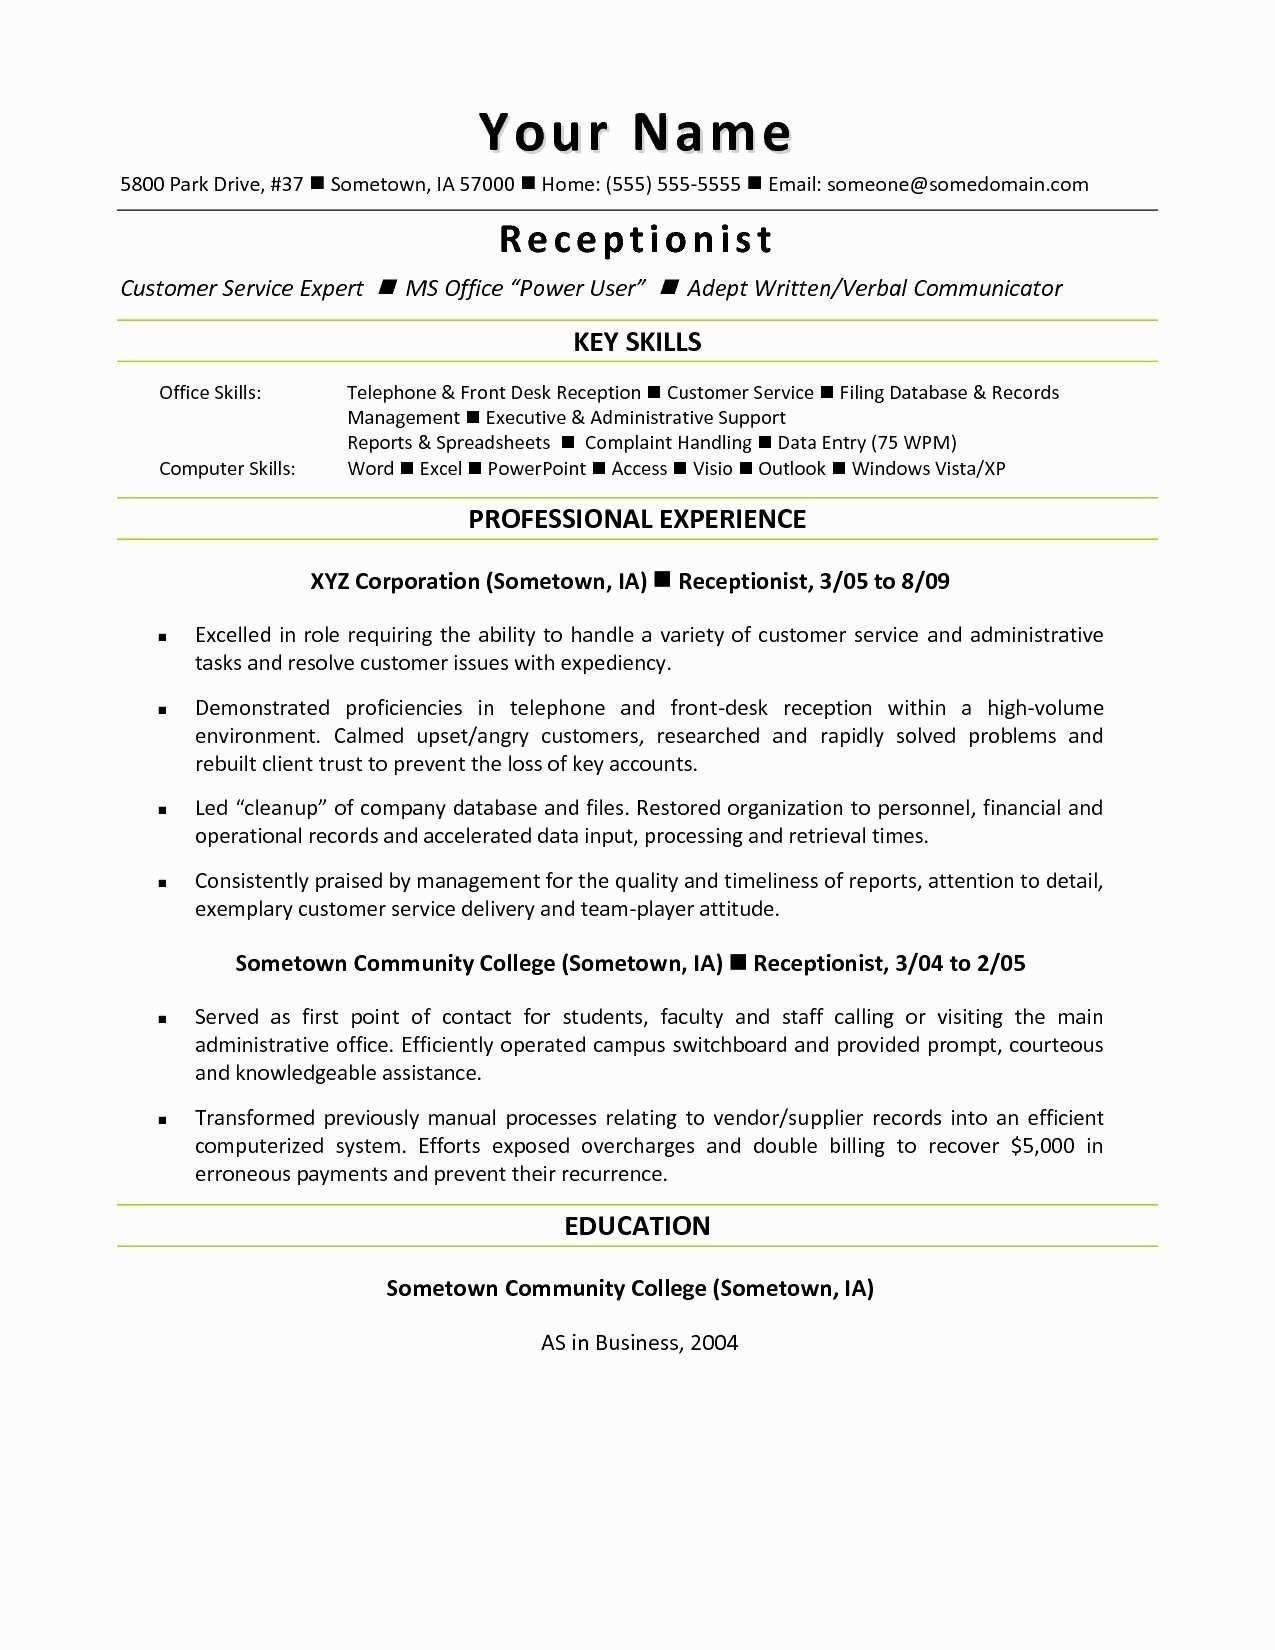 Good Skills to Have On A Resume - areas Expertise Resume Lovely Good Skills for Resume Beautiful